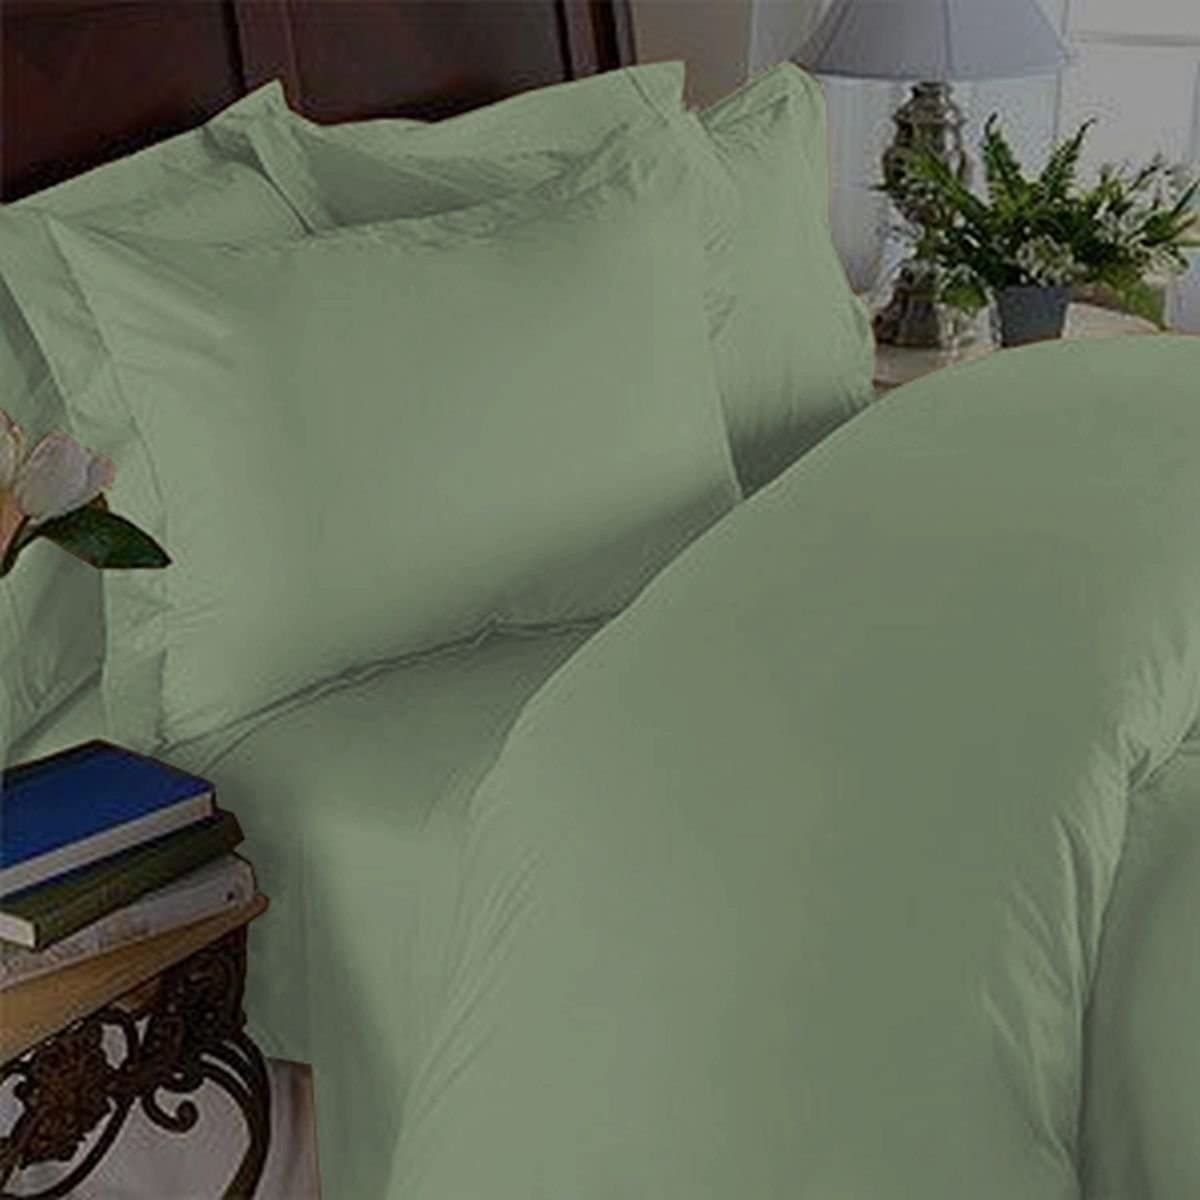 New Elegant Comfort 1500 Thread Count  Egyptian Cotton King Flat Sheet in Sage